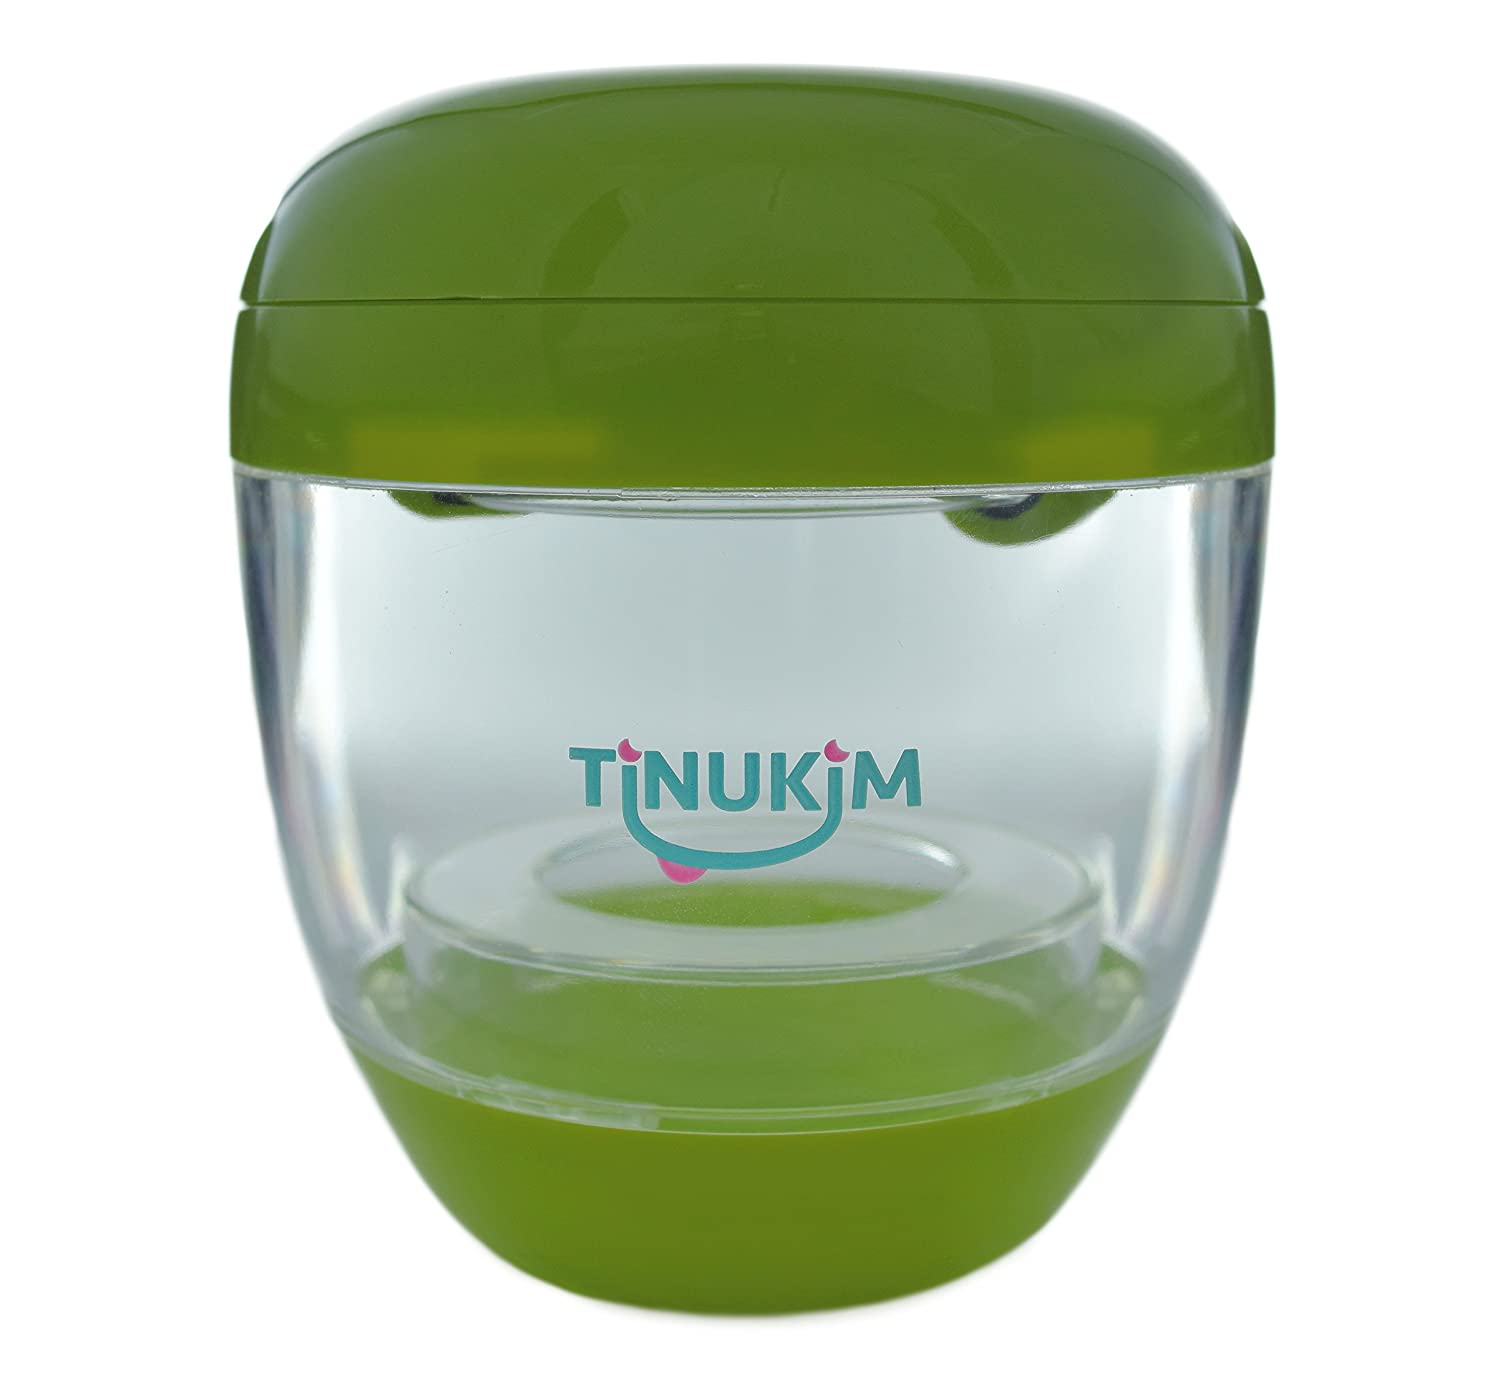 Tinukim Portable UV Sterilizer for Pacifier and Baby Bottle Nipples: Eliminates 99.9% of Bacteria and Germs (Green) TUVNSG